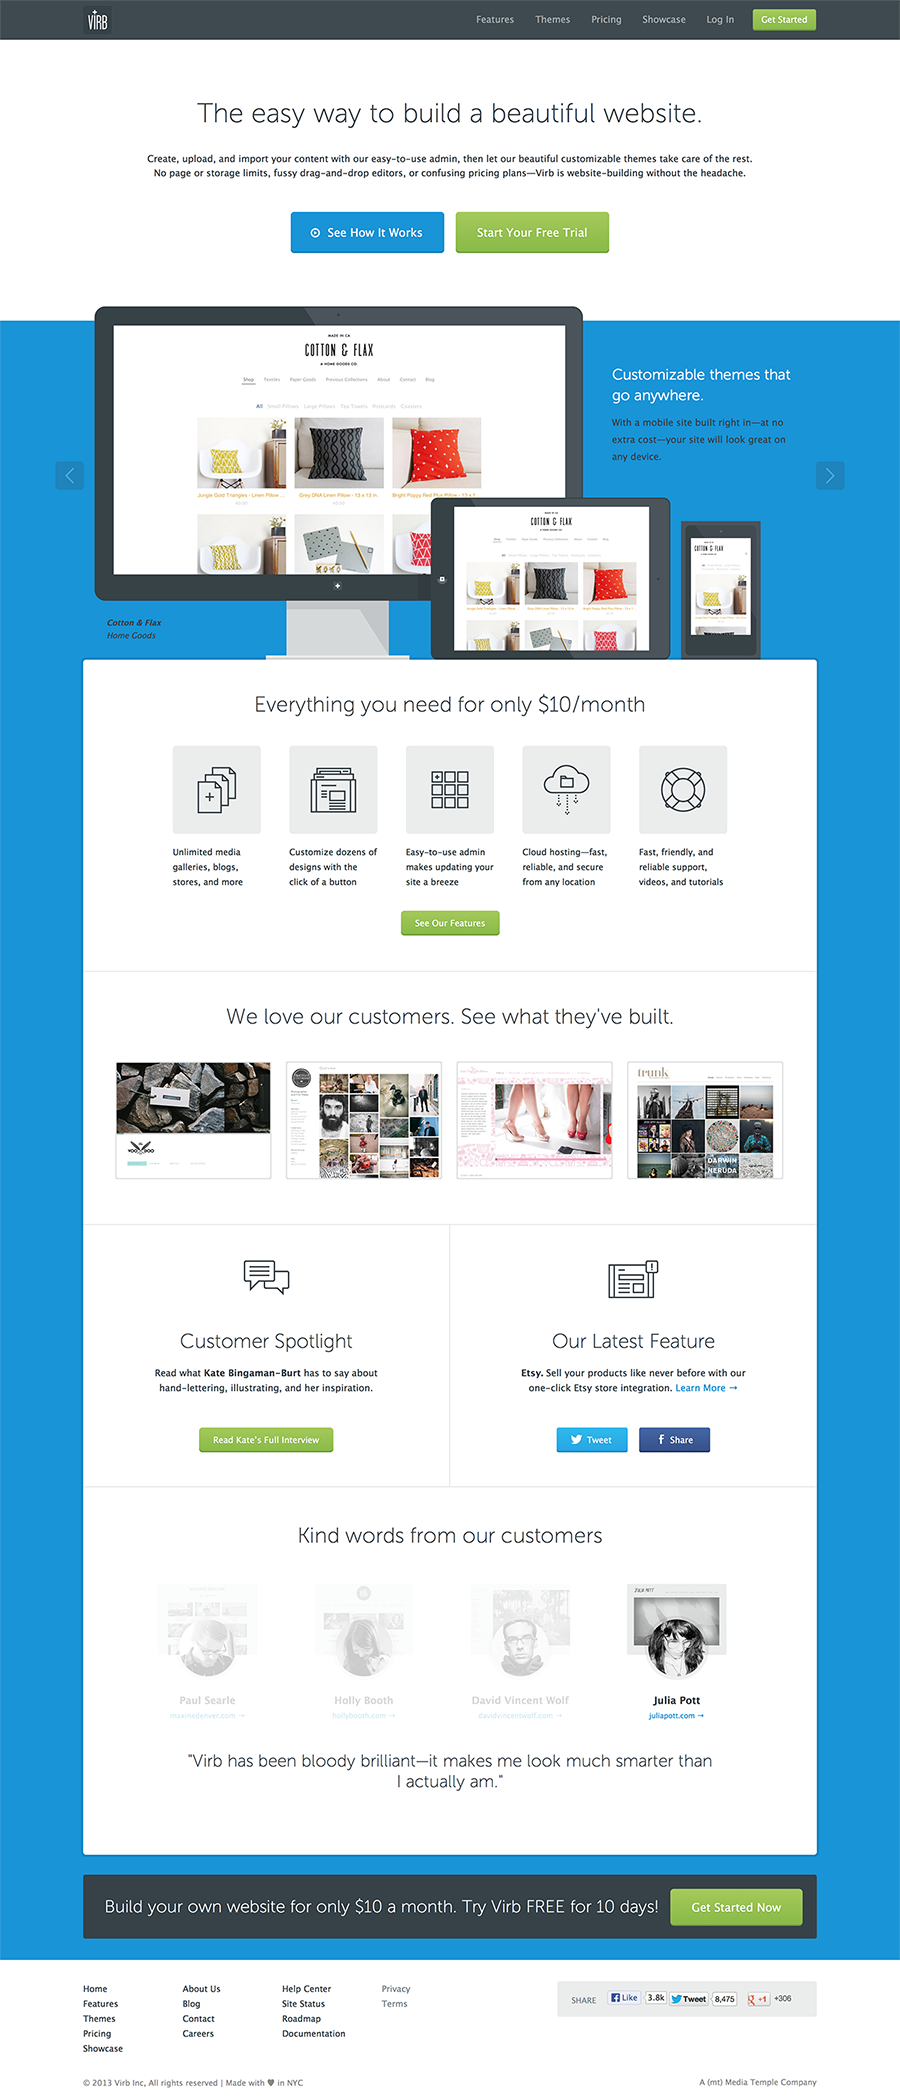 virb templates - virb build your own website download lengkap